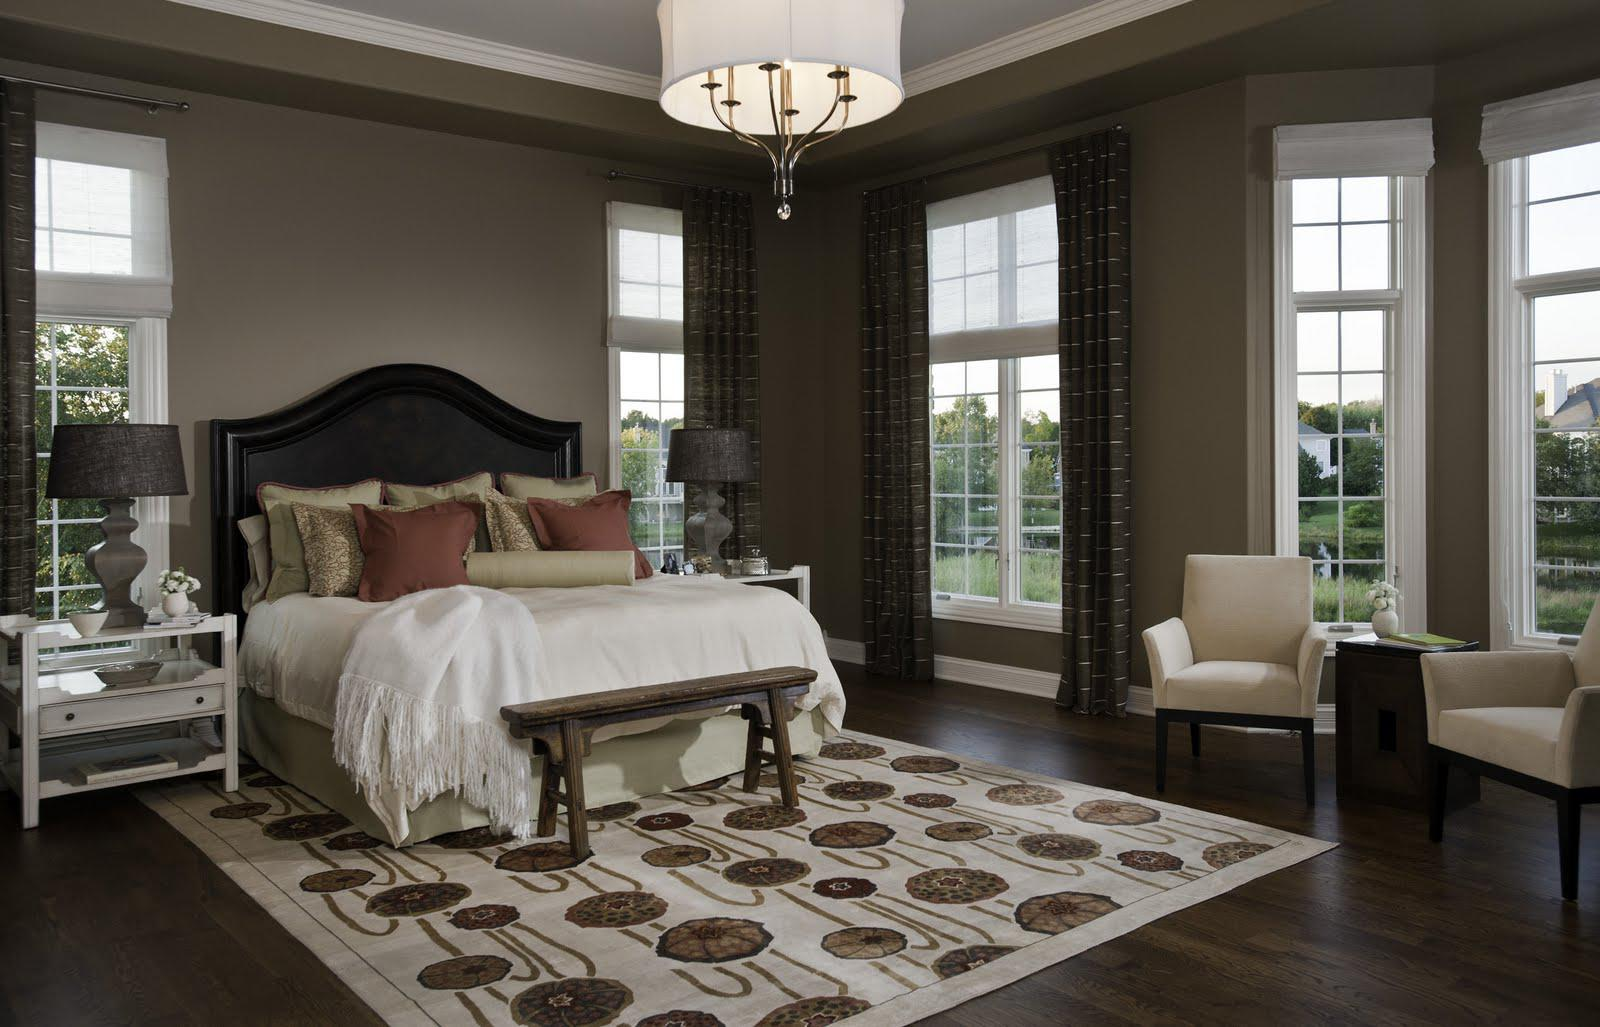 Image of: Top Window Treatment Ideas for Bedroom